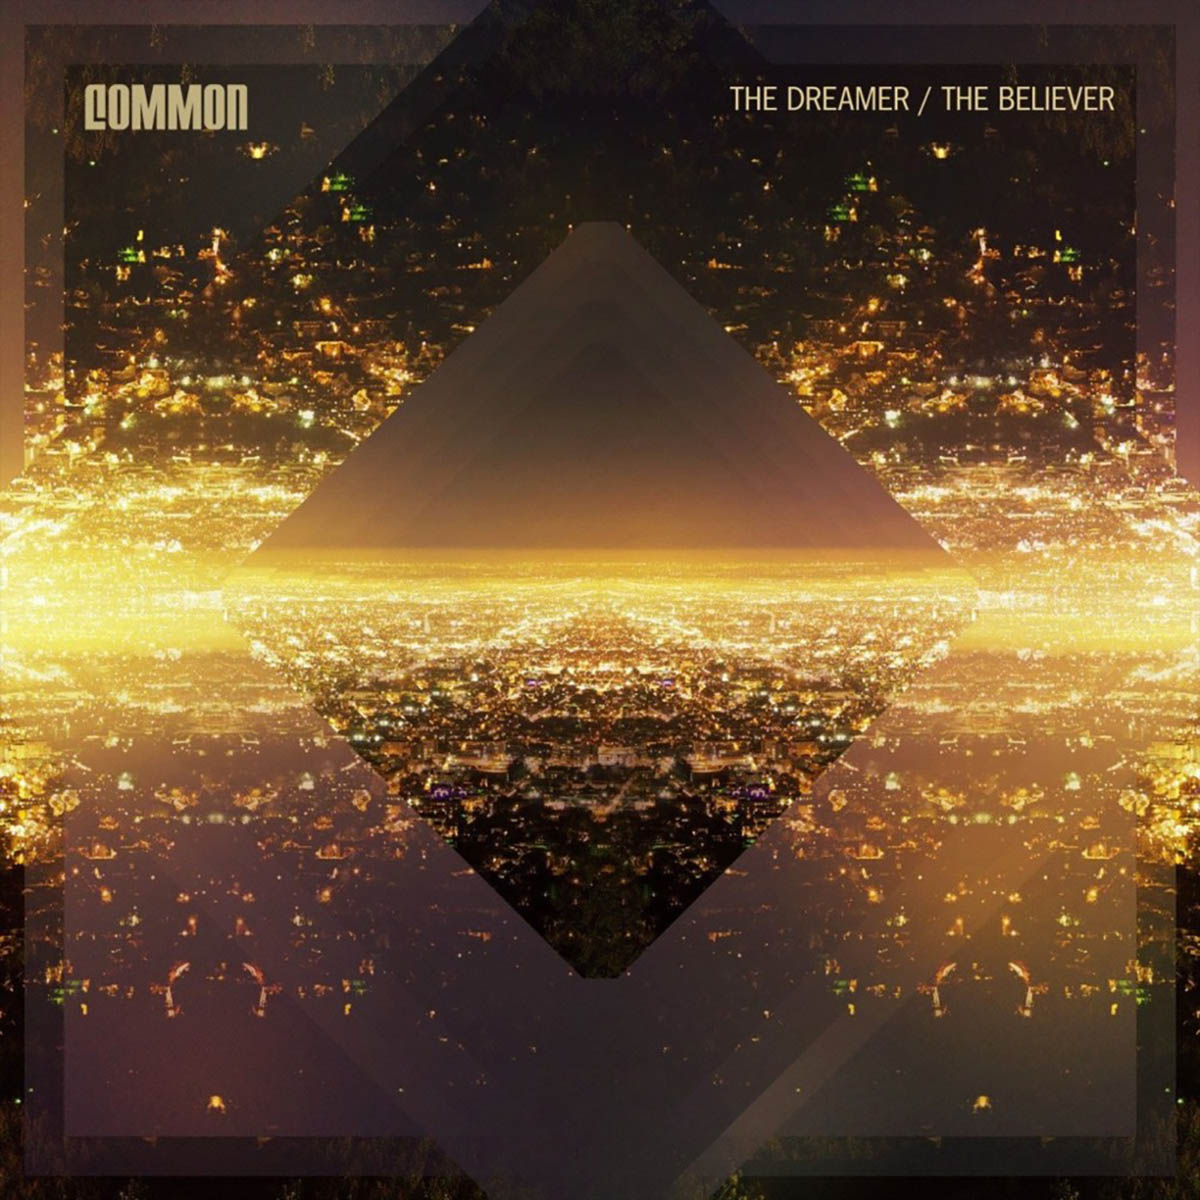 Common, The Dreamer/The Believer